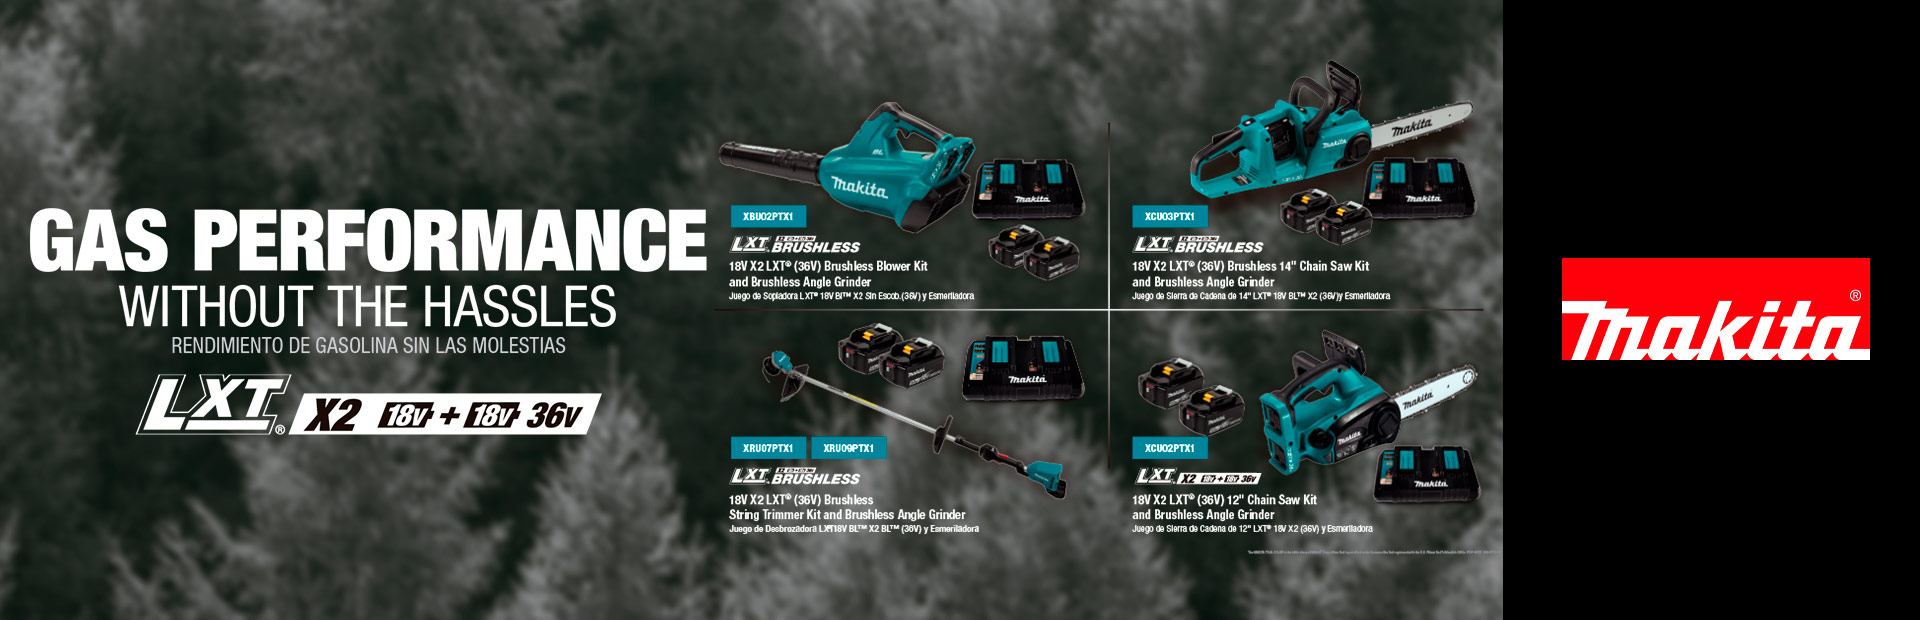 Makita: Gas Performance Without The Hassles